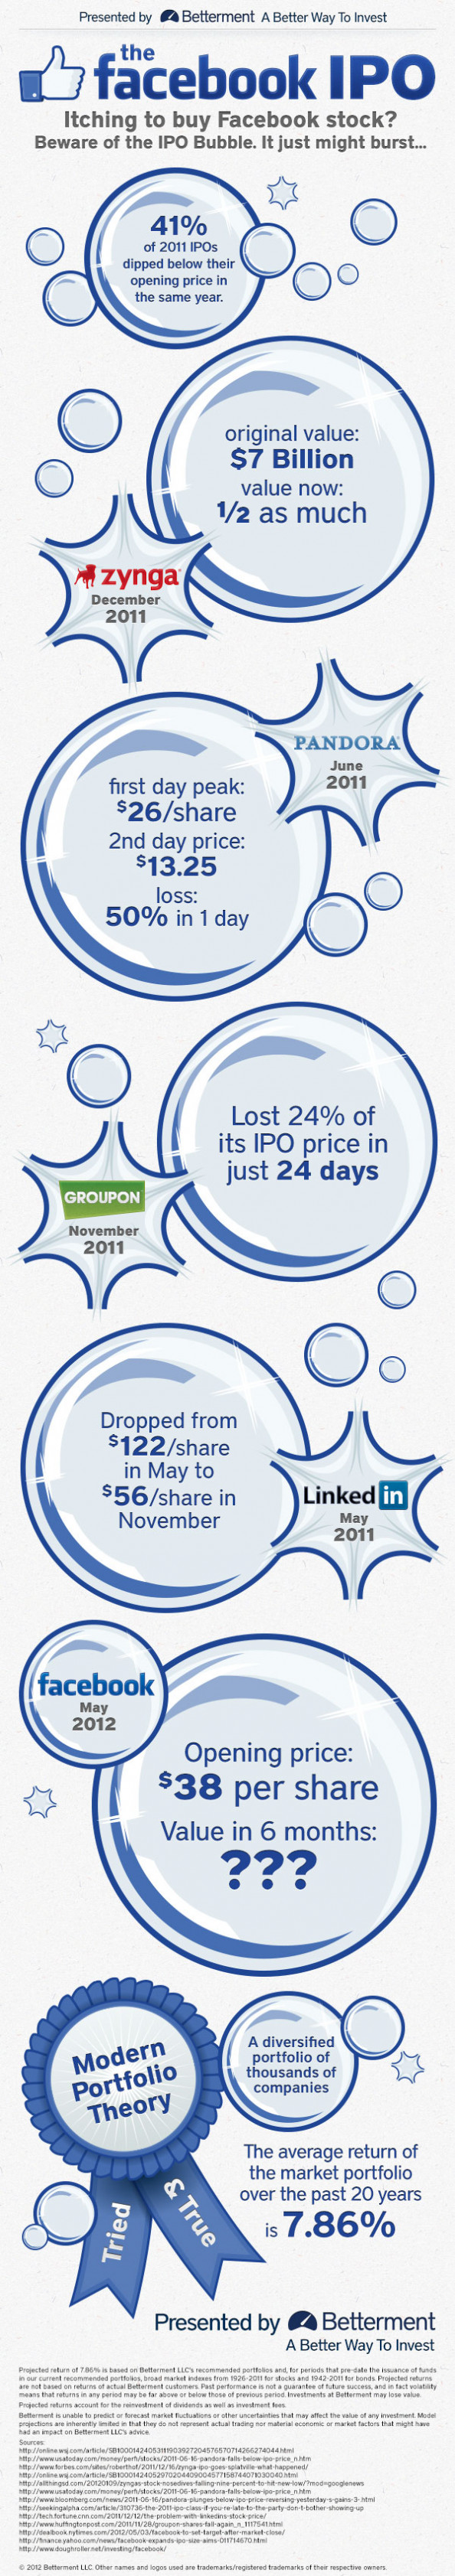 The Facebook IPO Bubble Infographic